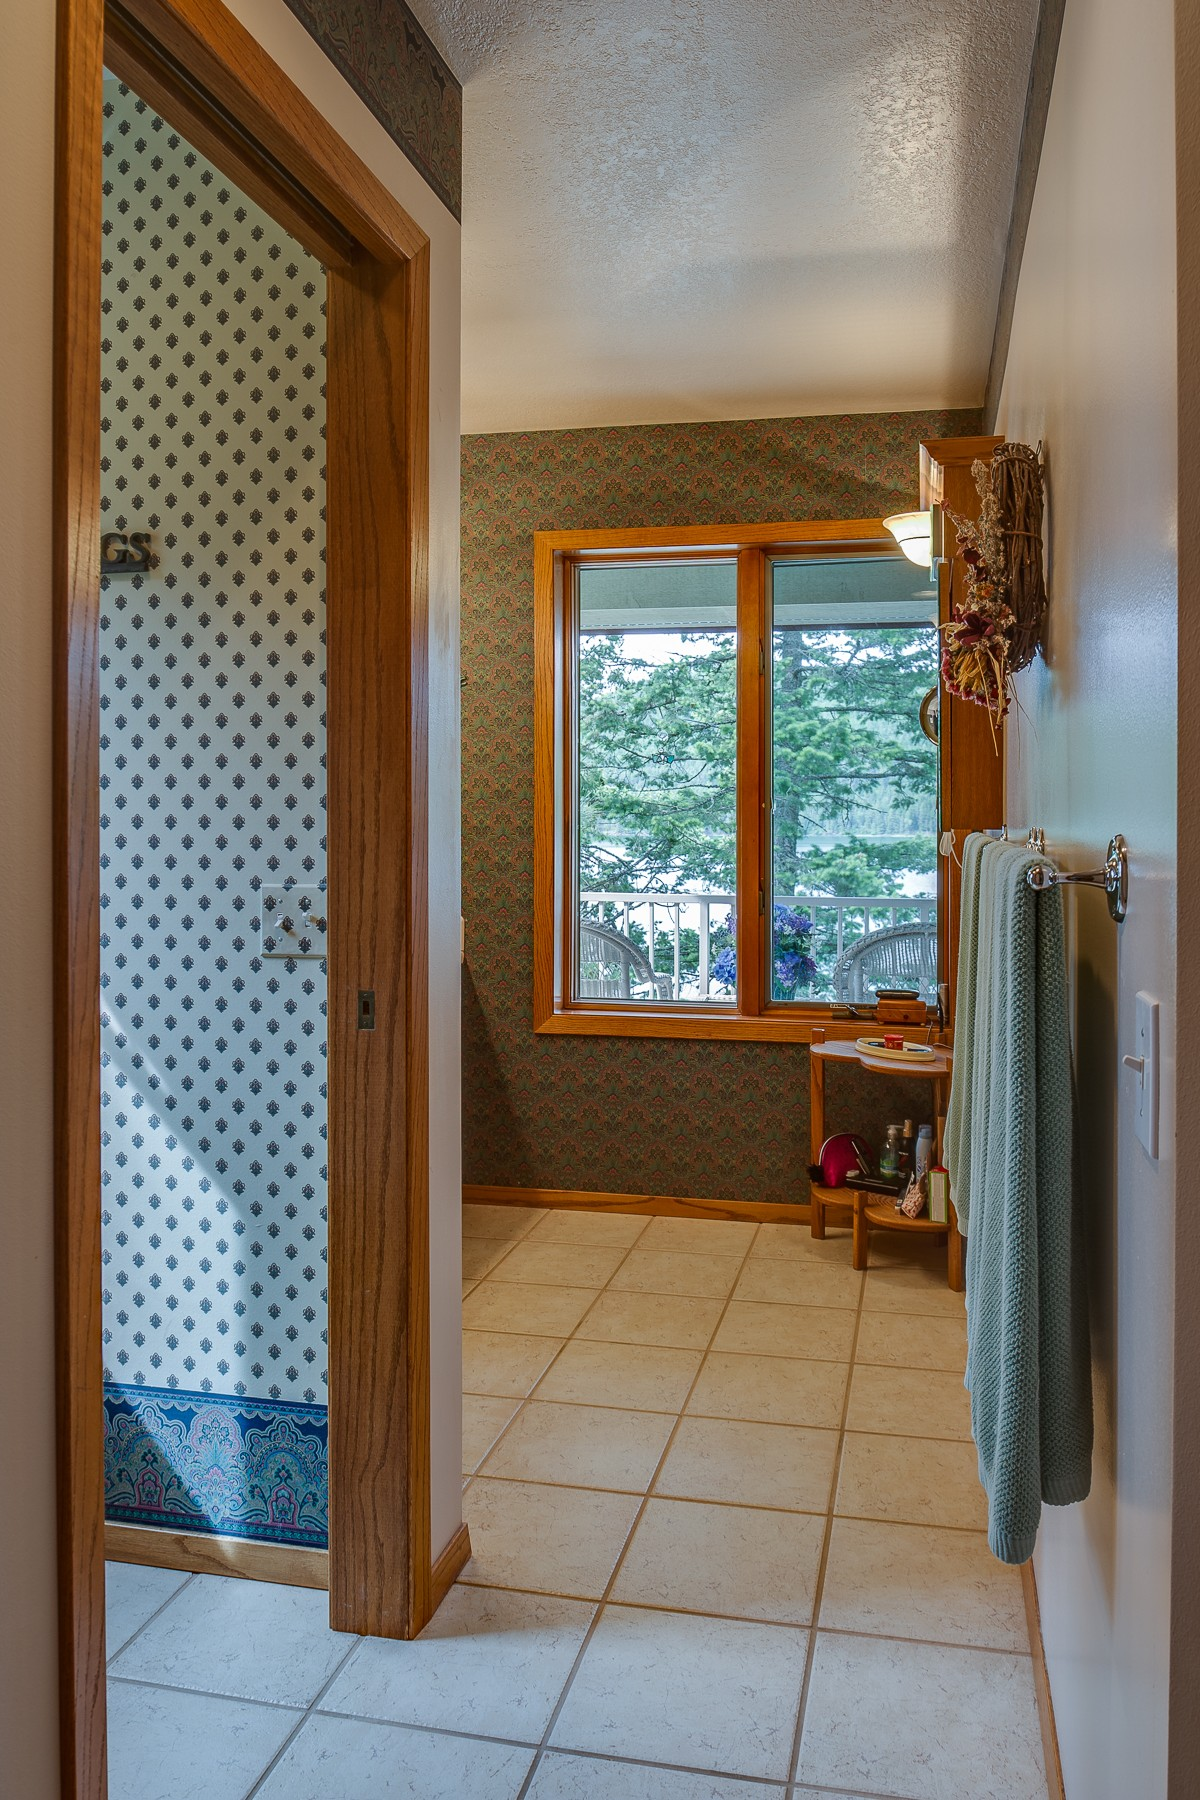 Additional photo for property listing at 2840 Rest Haven, Whitefish Lake 2840  Rest Haven Dr Whitefish, Montana 59937 United States